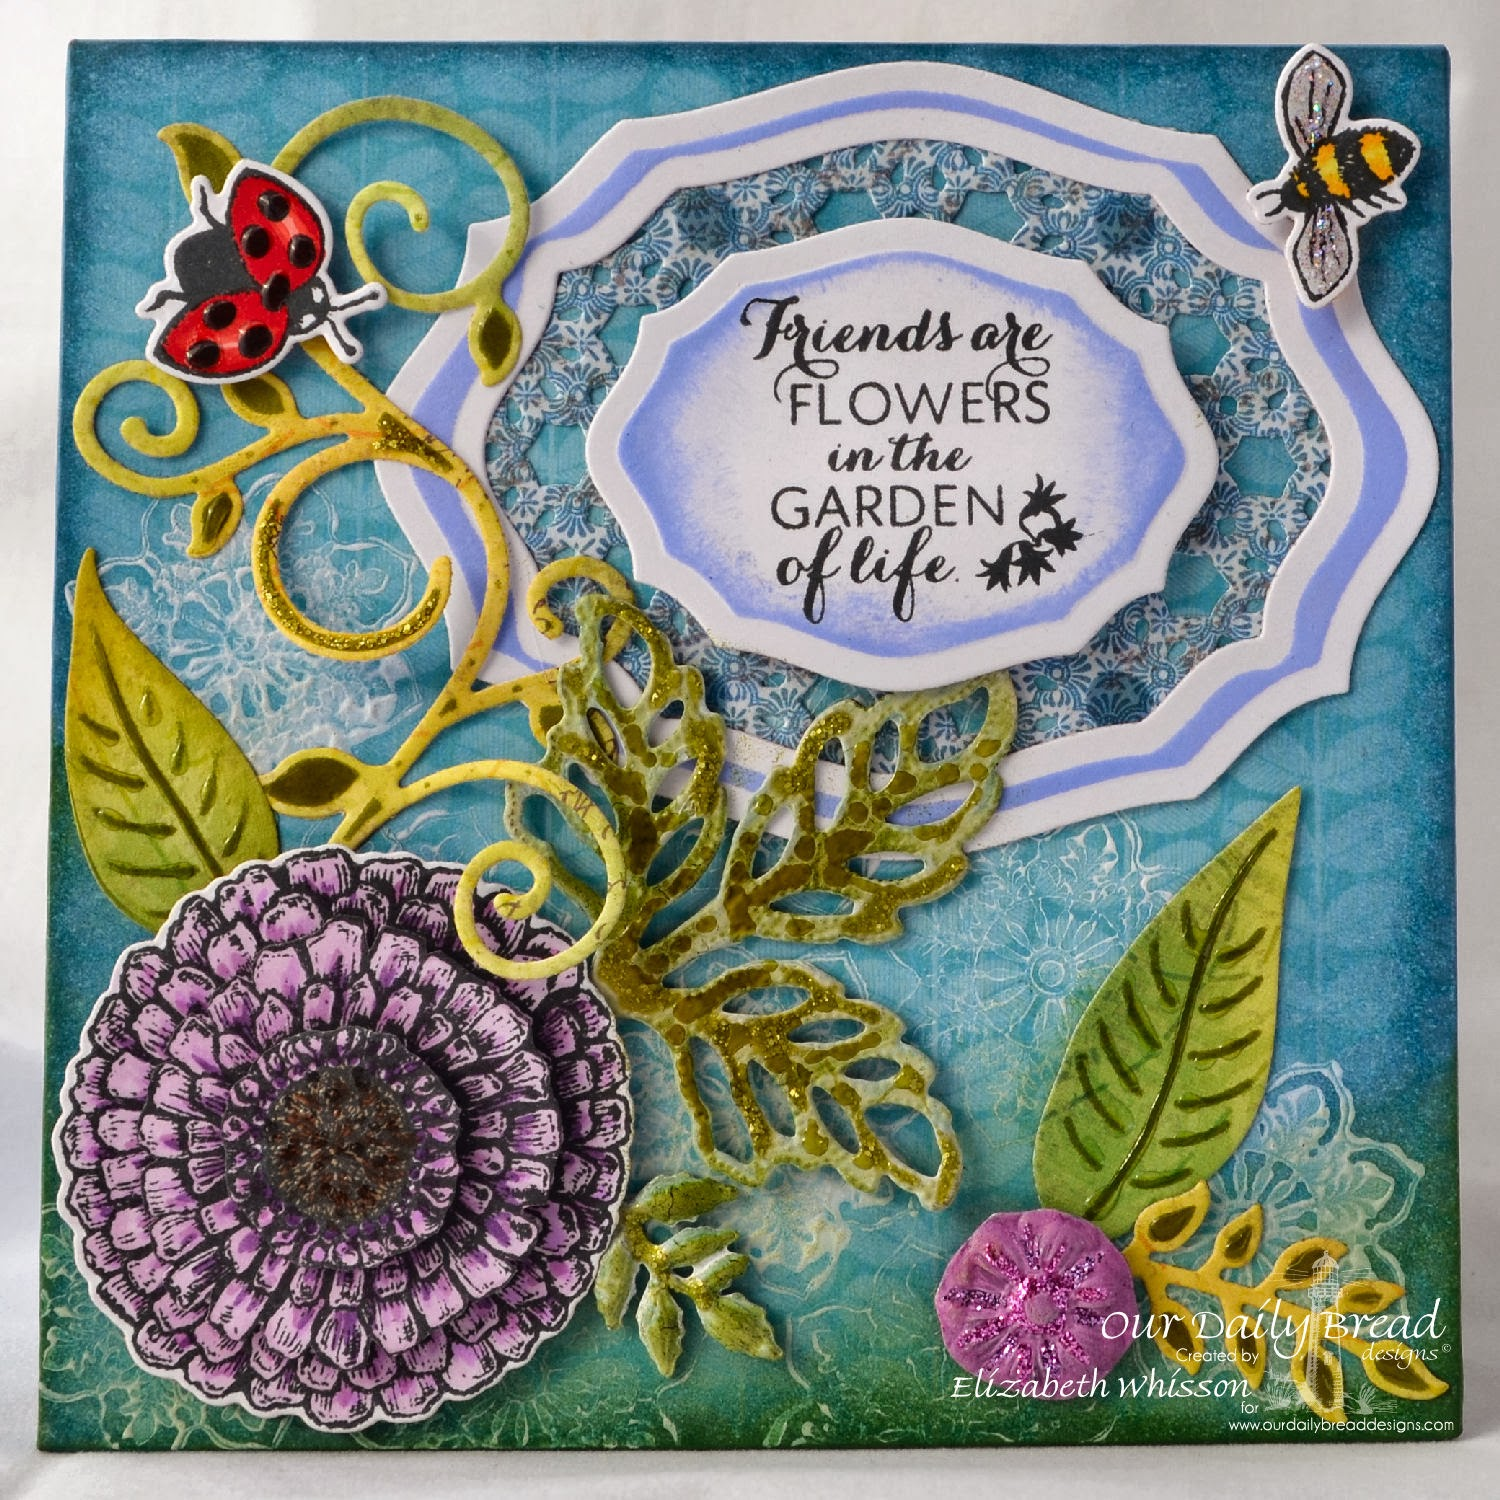 Elizabeth Whisson, Our Daily Bread Designs, Zinnia, Ornate Borders and Flowers, Elegant Oval Dies, Zinnia and Leaves Dies, Fancy Foliage Dies, Daisy chain background die, blooming garden collection, copics, gesso, distress ink